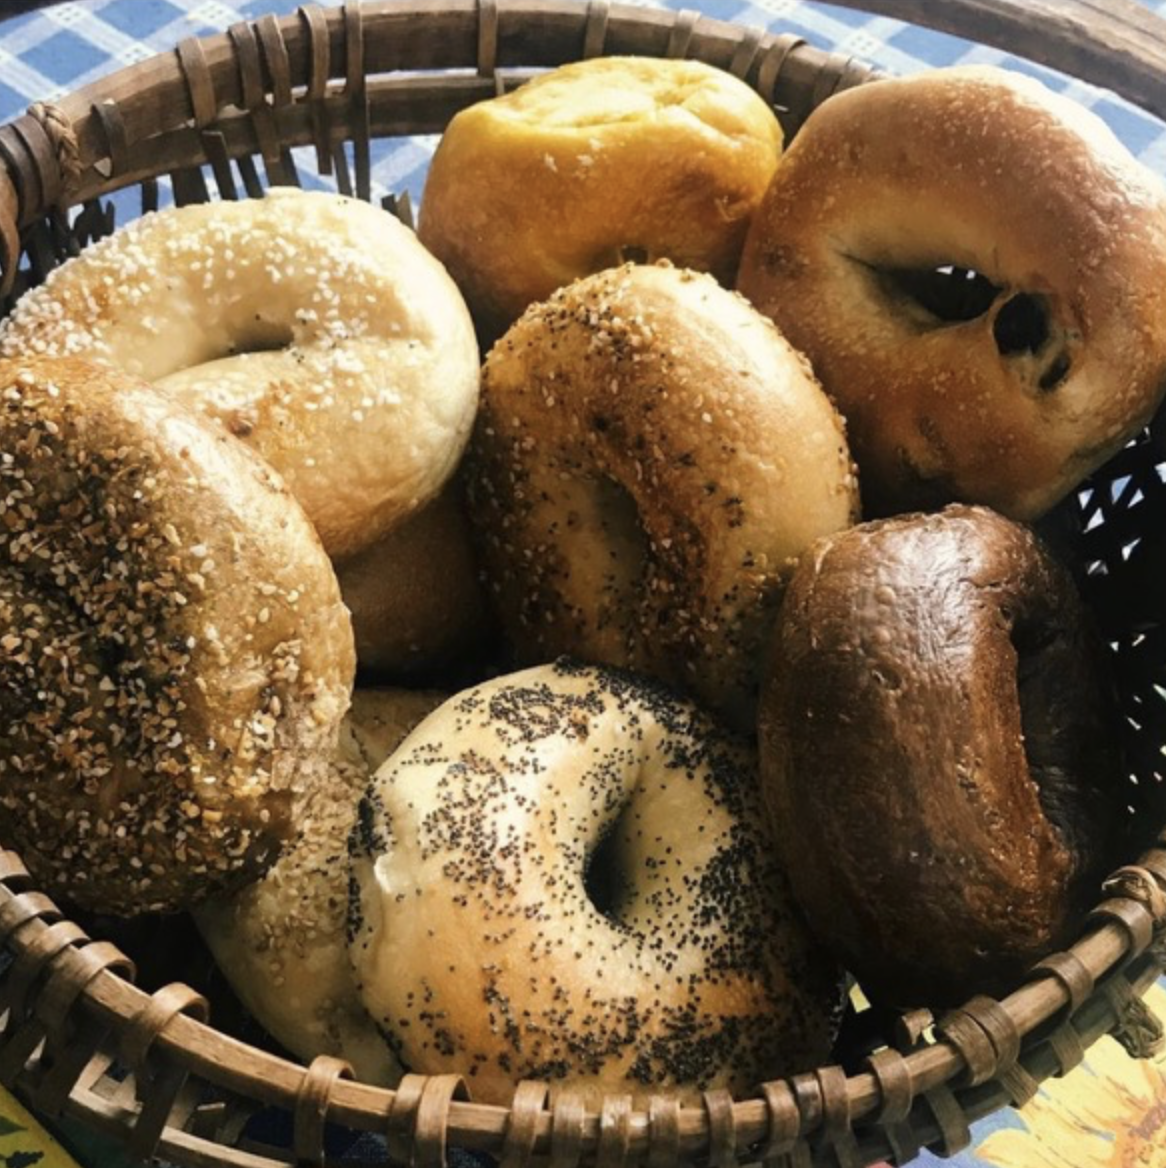 NY Style Bagels at Stockton Market